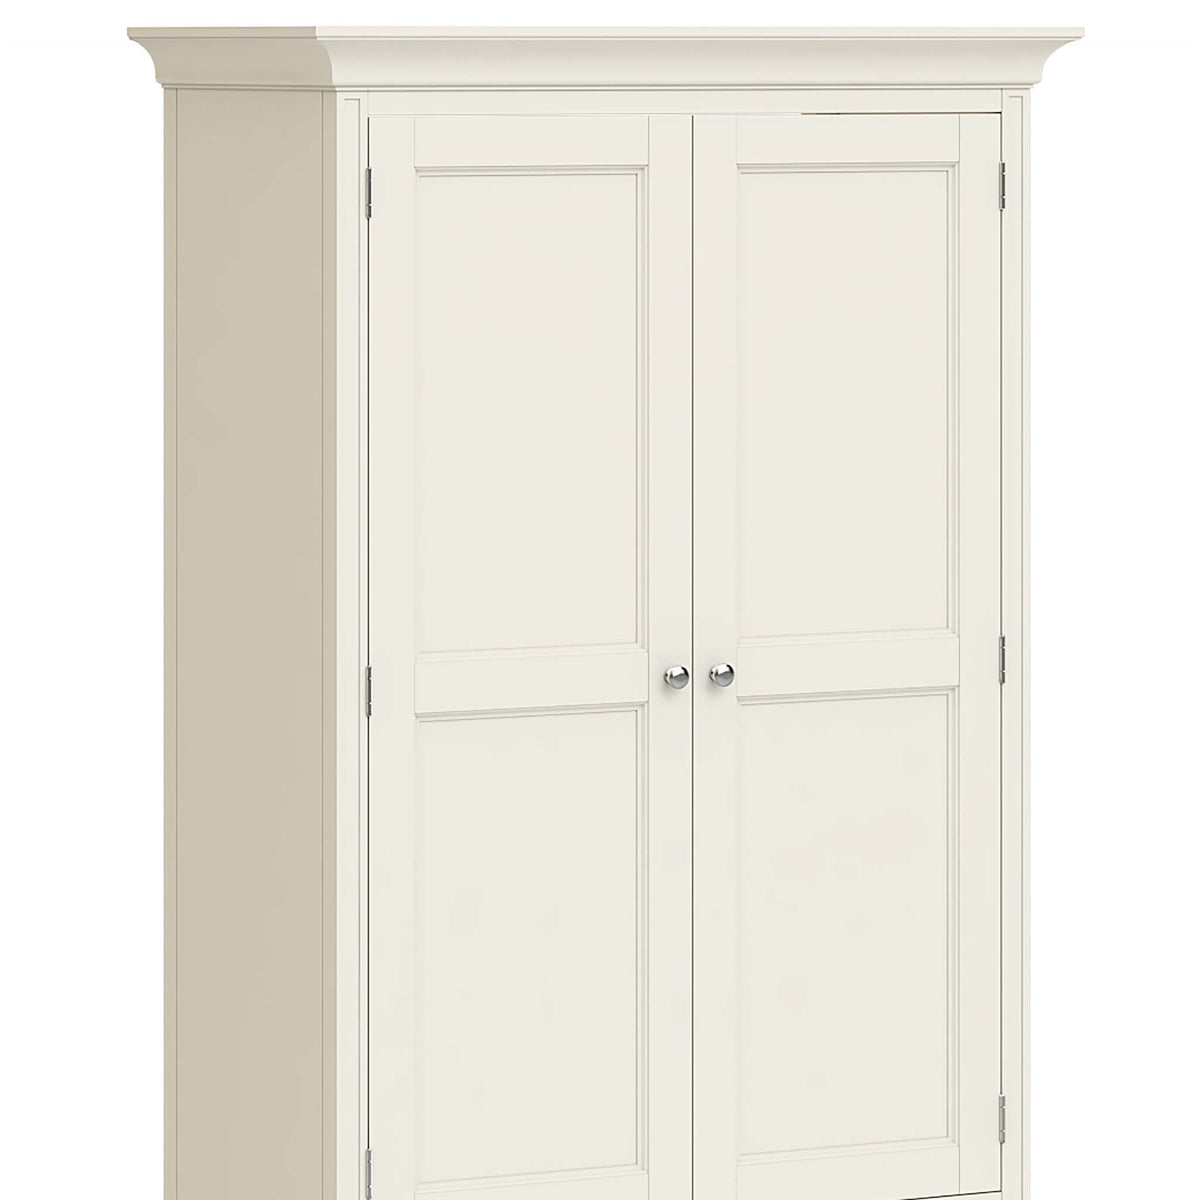 Mulsanne Cream Double Wardrobe with Drawer - Close Up of Wardrobe Doors